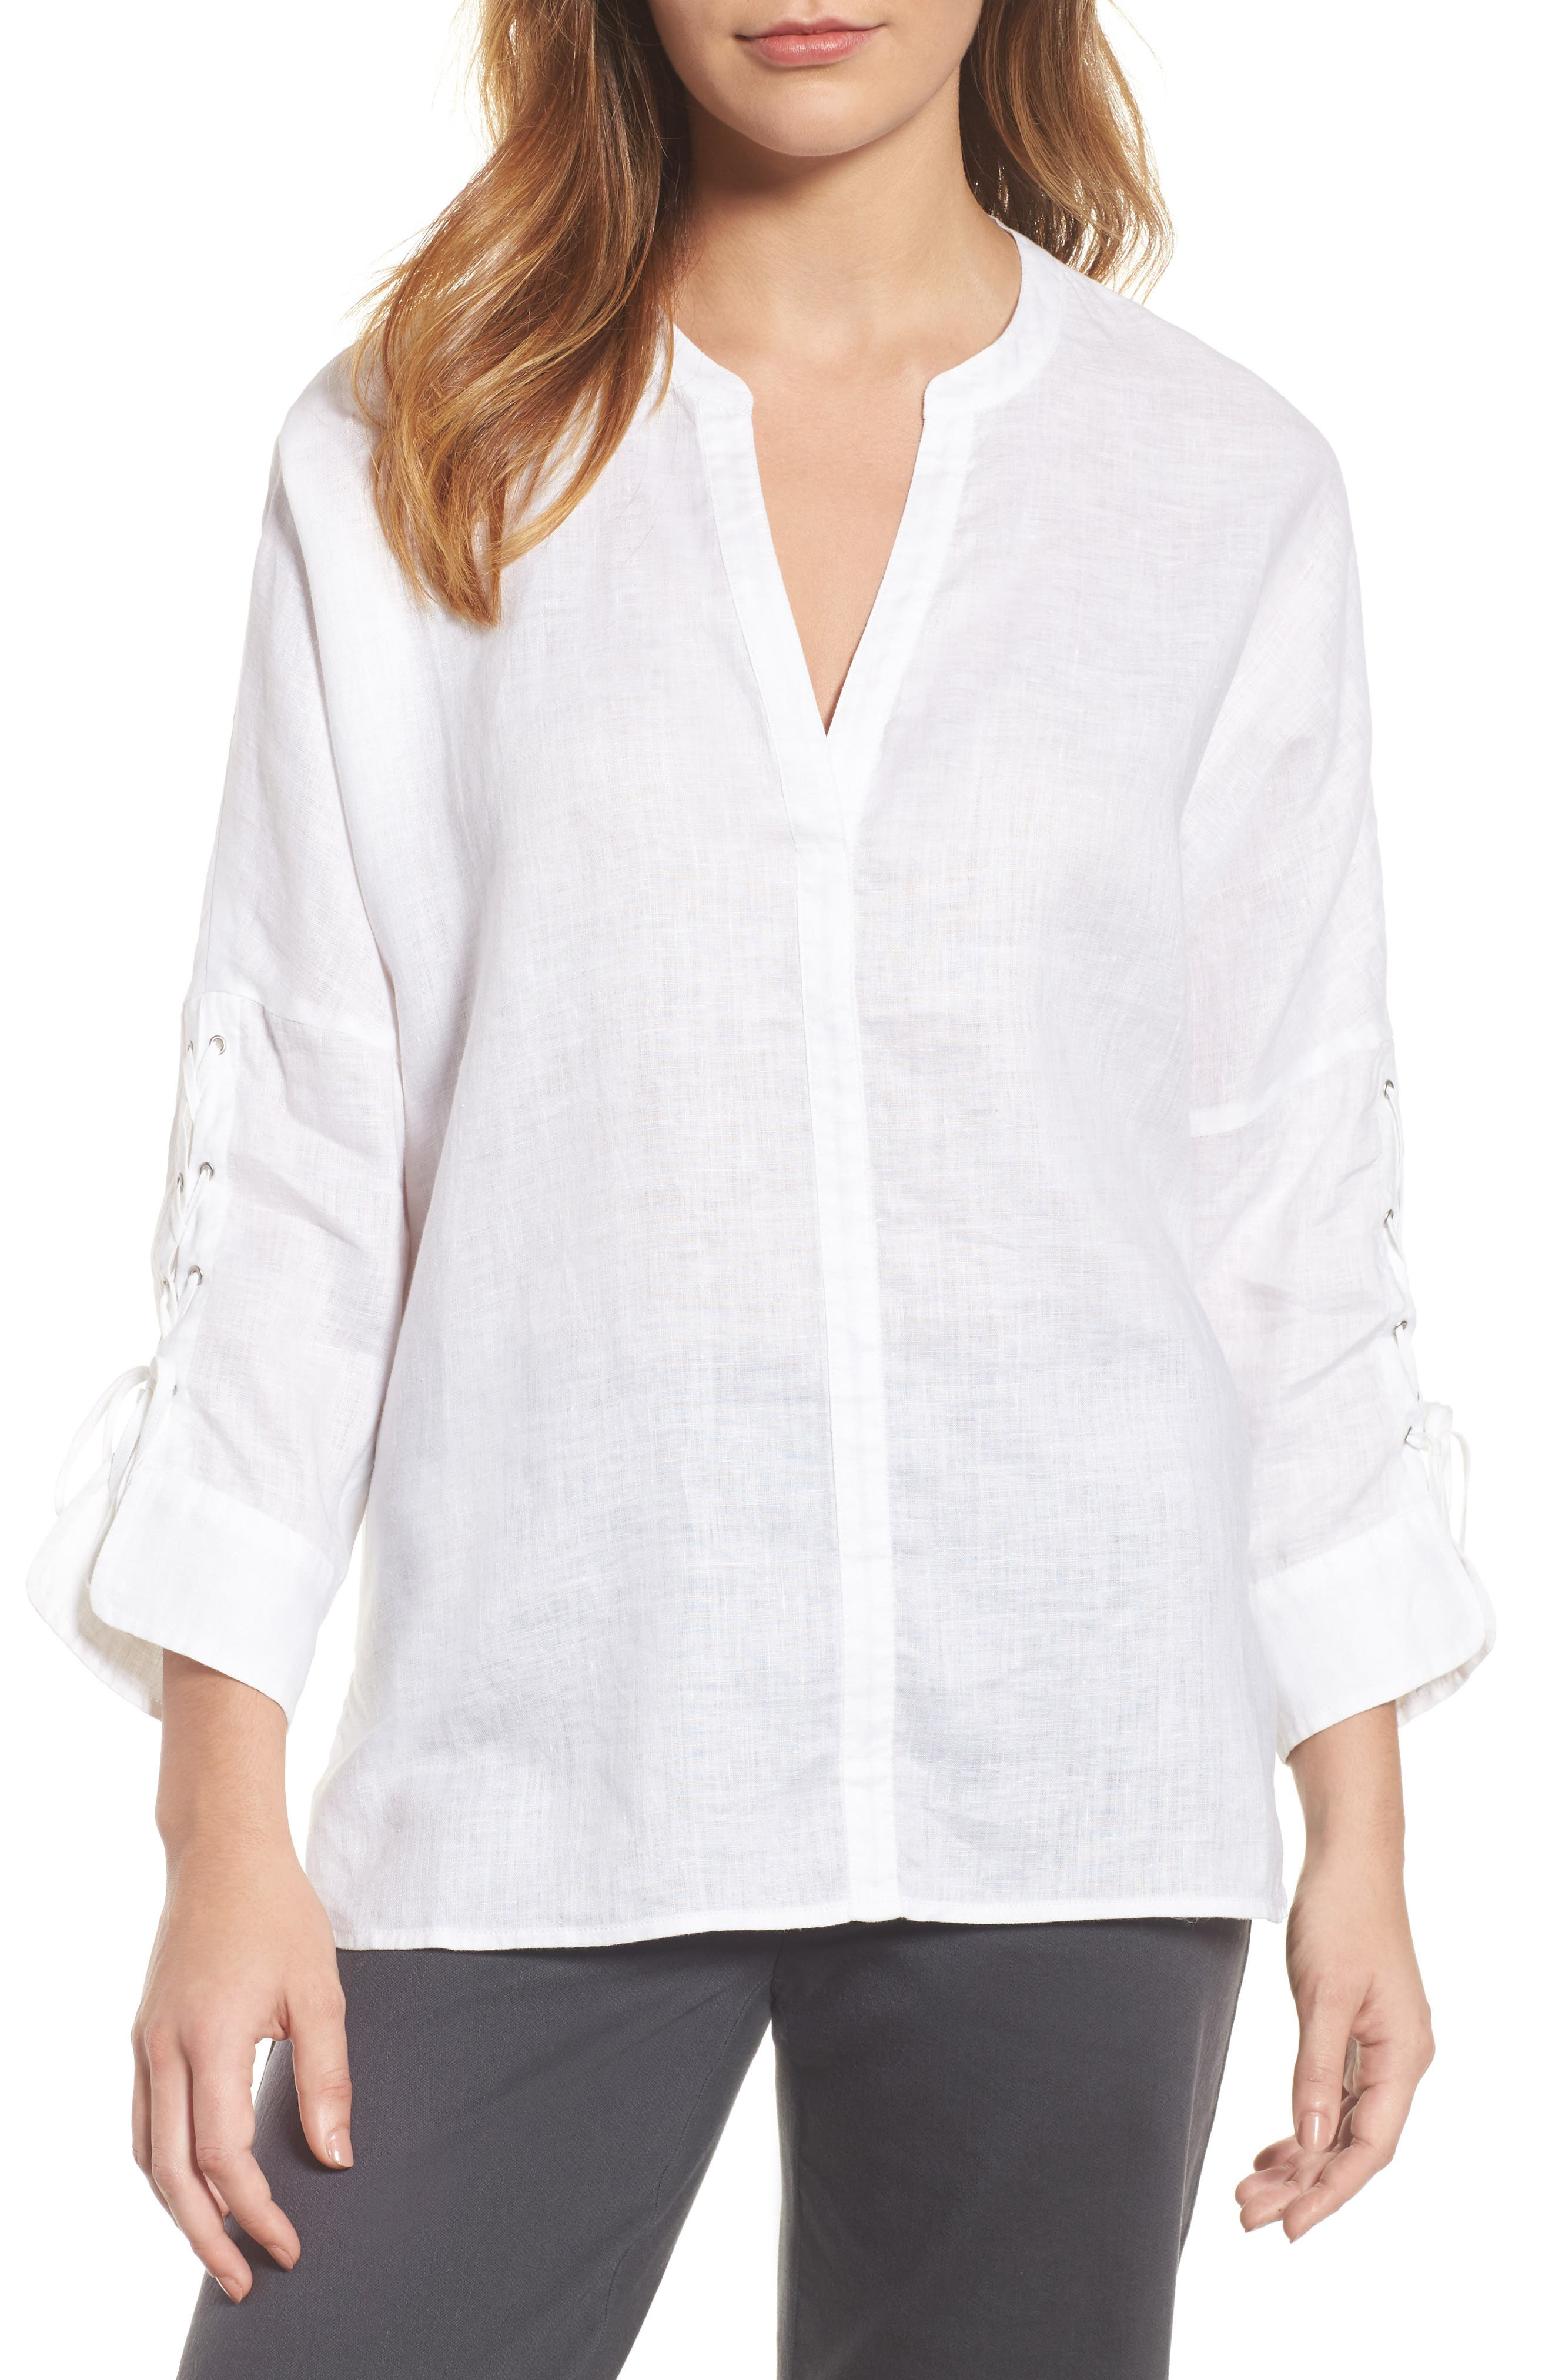 Alternate Image 1 Selected - NIC + ZOE Cliff View Linen Top